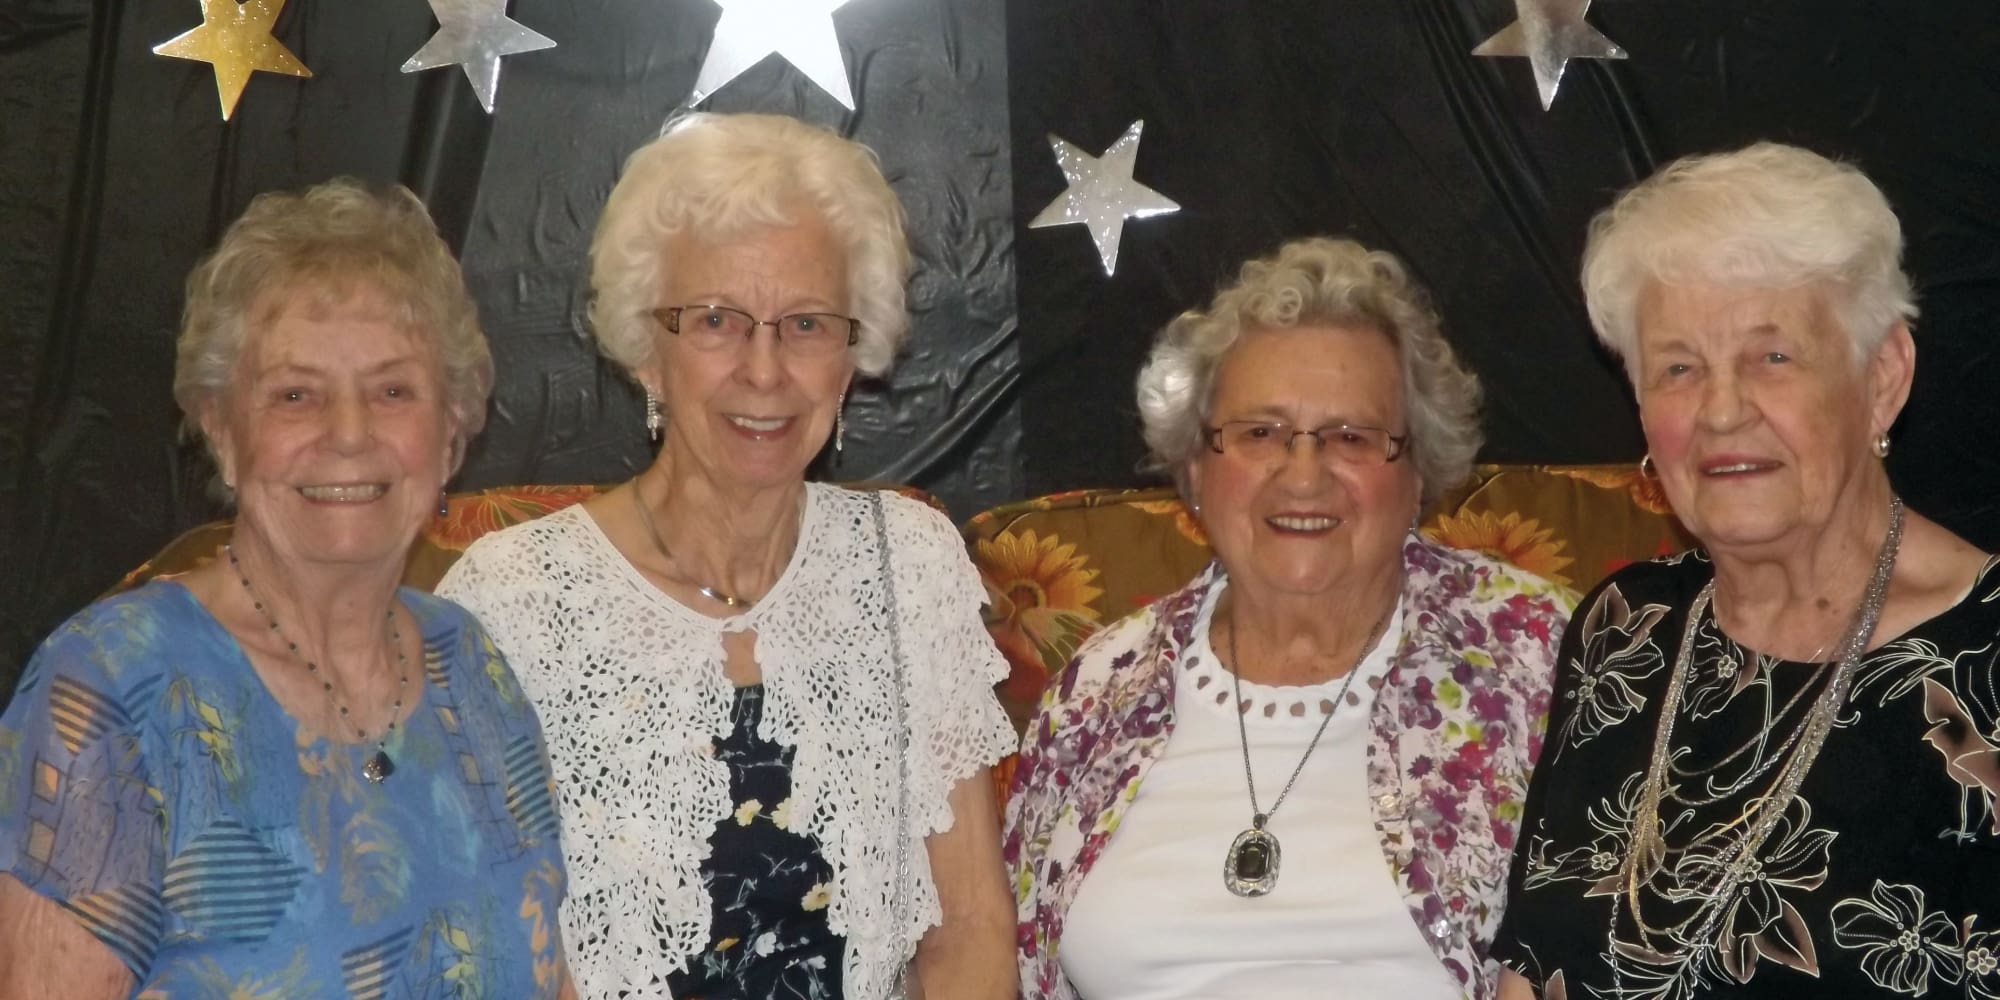 A group of residents posing in front of a backdrop at Sterling Heights Gracious Retirement Living in Bethlehem, Pennsylvania